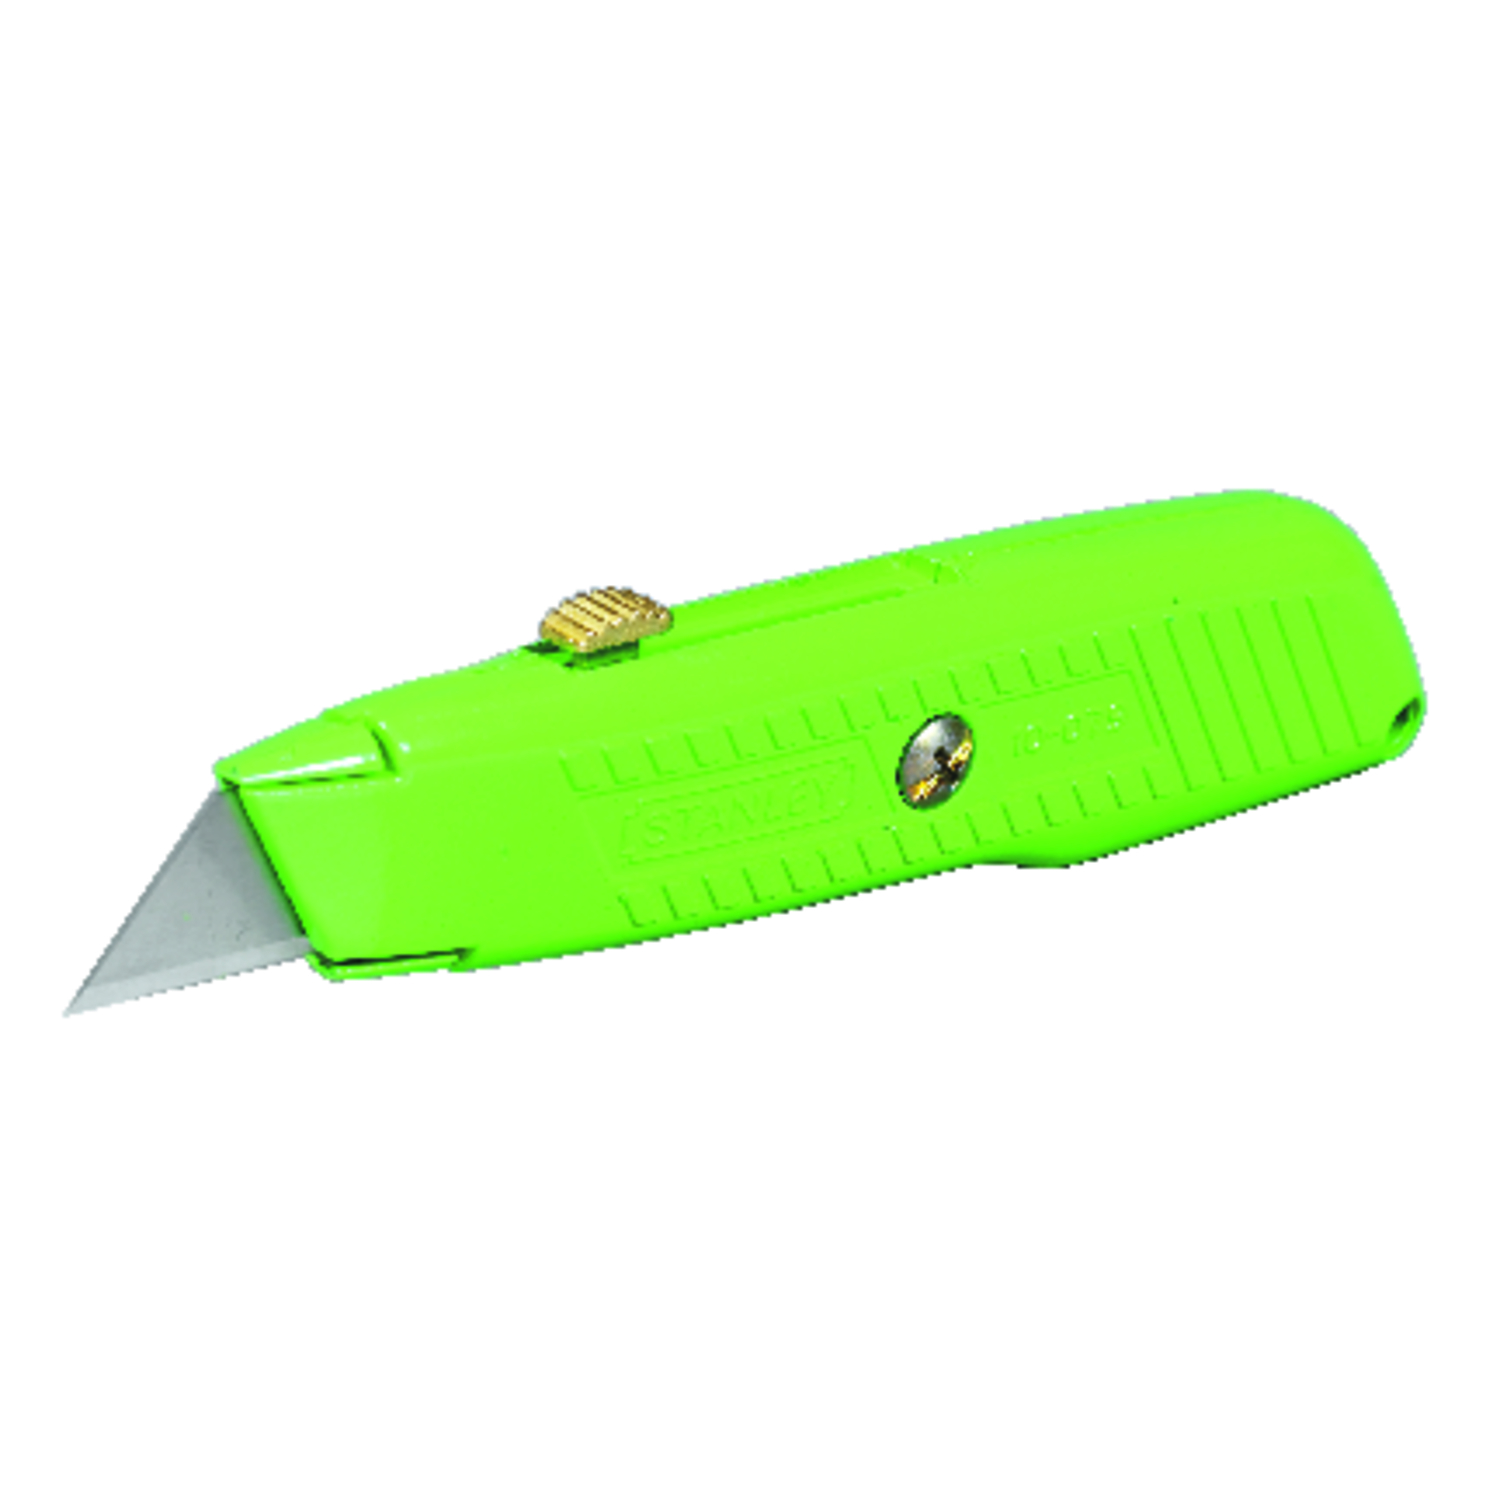 Stanley  High Visibility  5-7/8 in. Retractable  Green  1 pc. Utility Knife